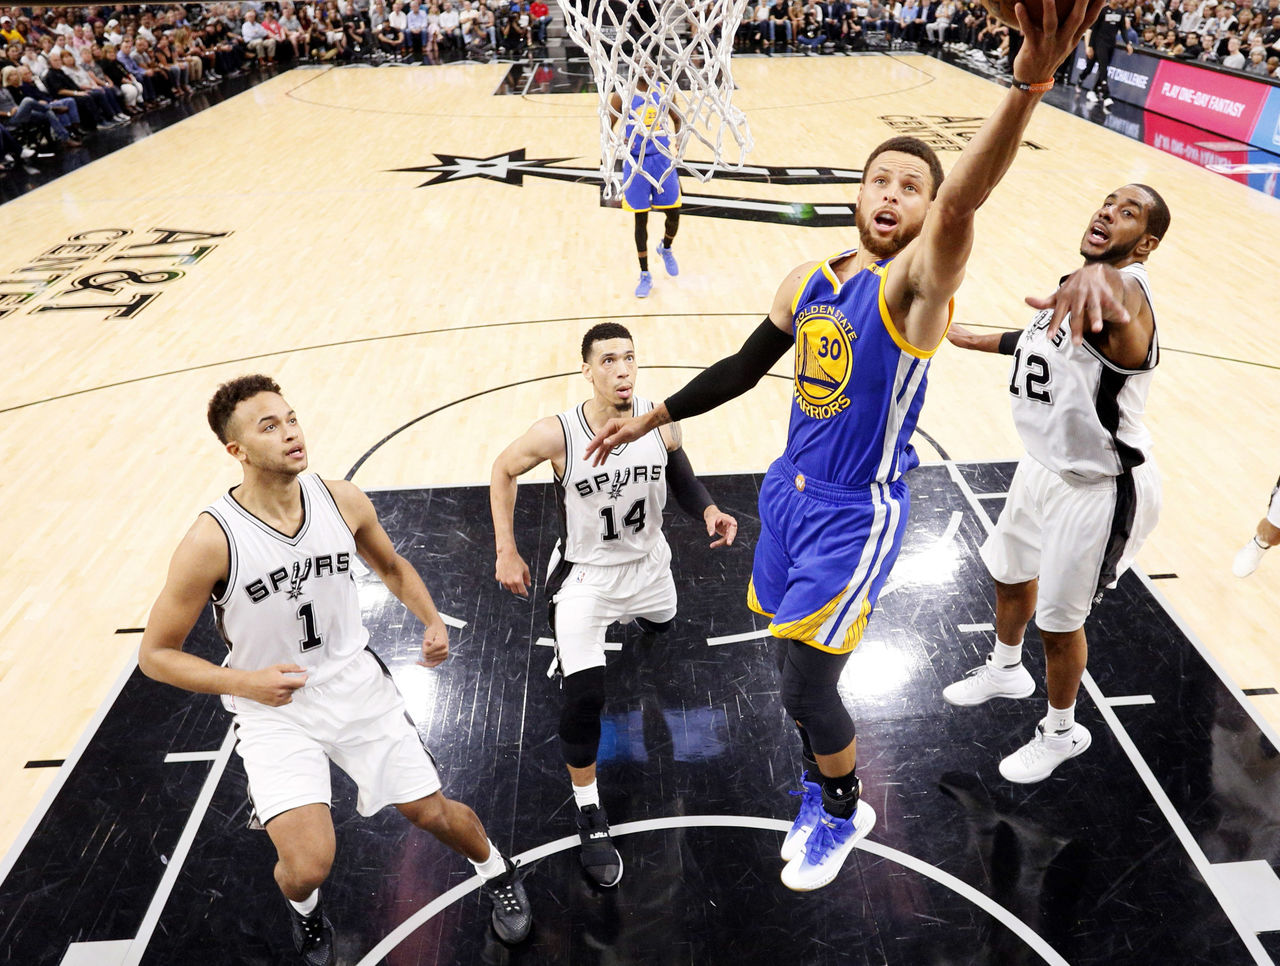 Cropped 2017 05 23t022835z 1997766426 nocid rtrmadp 3 nba playoffs golden state warriors at san antonio spurs